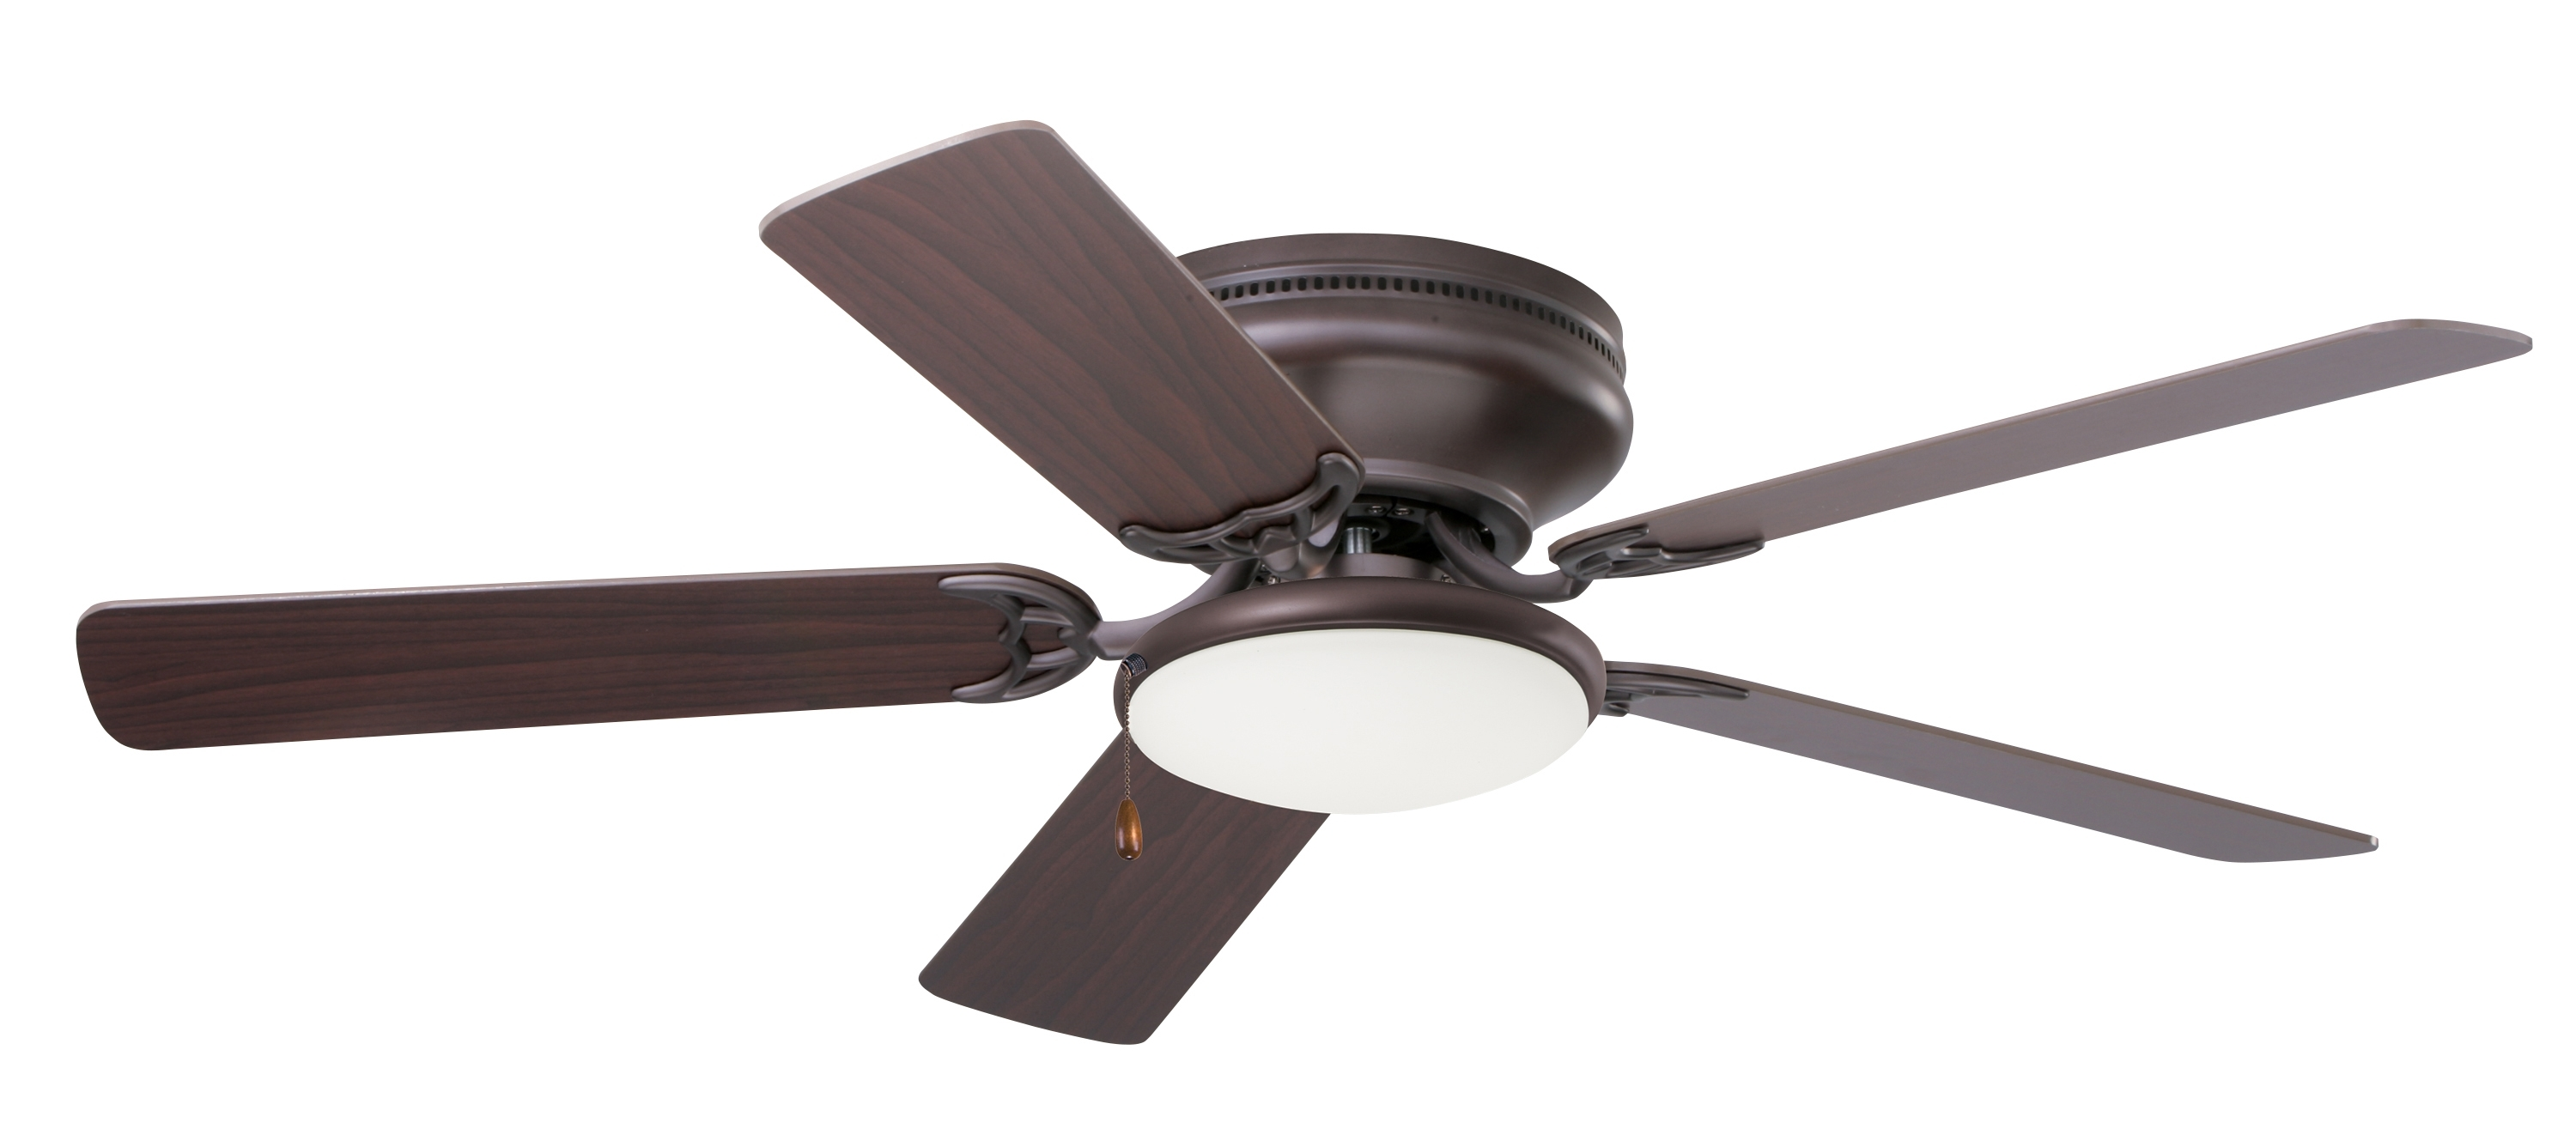 2018 Emerson Outdoor Ceiling Fans With Lights Inside Emerson Fans – Dorian Drake International Inc (View 13 of 20)